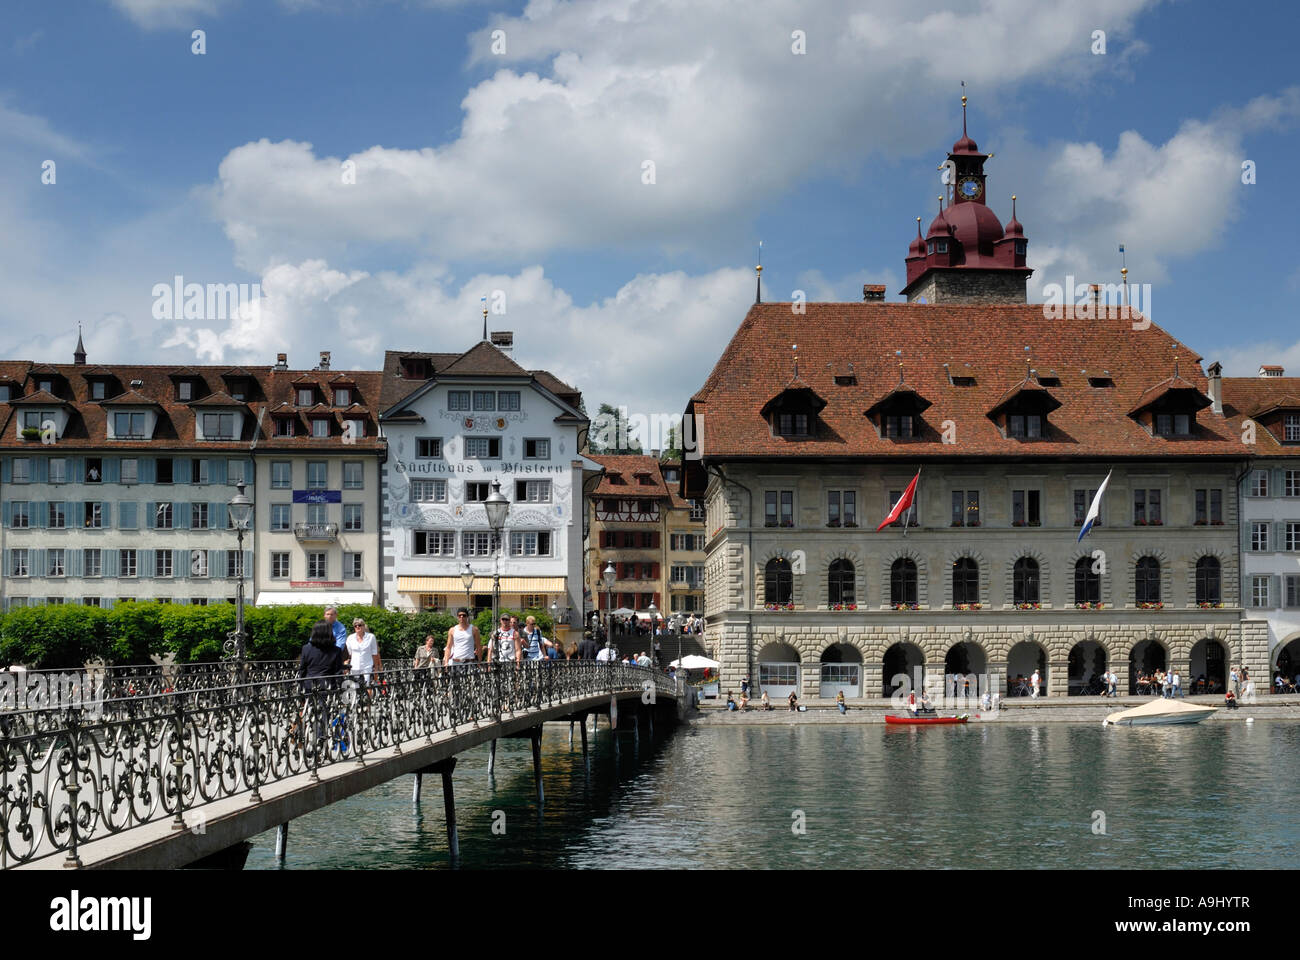 Lucerne - the city hall bridge and old part of town - Switzerland, Europe. Stock Photo